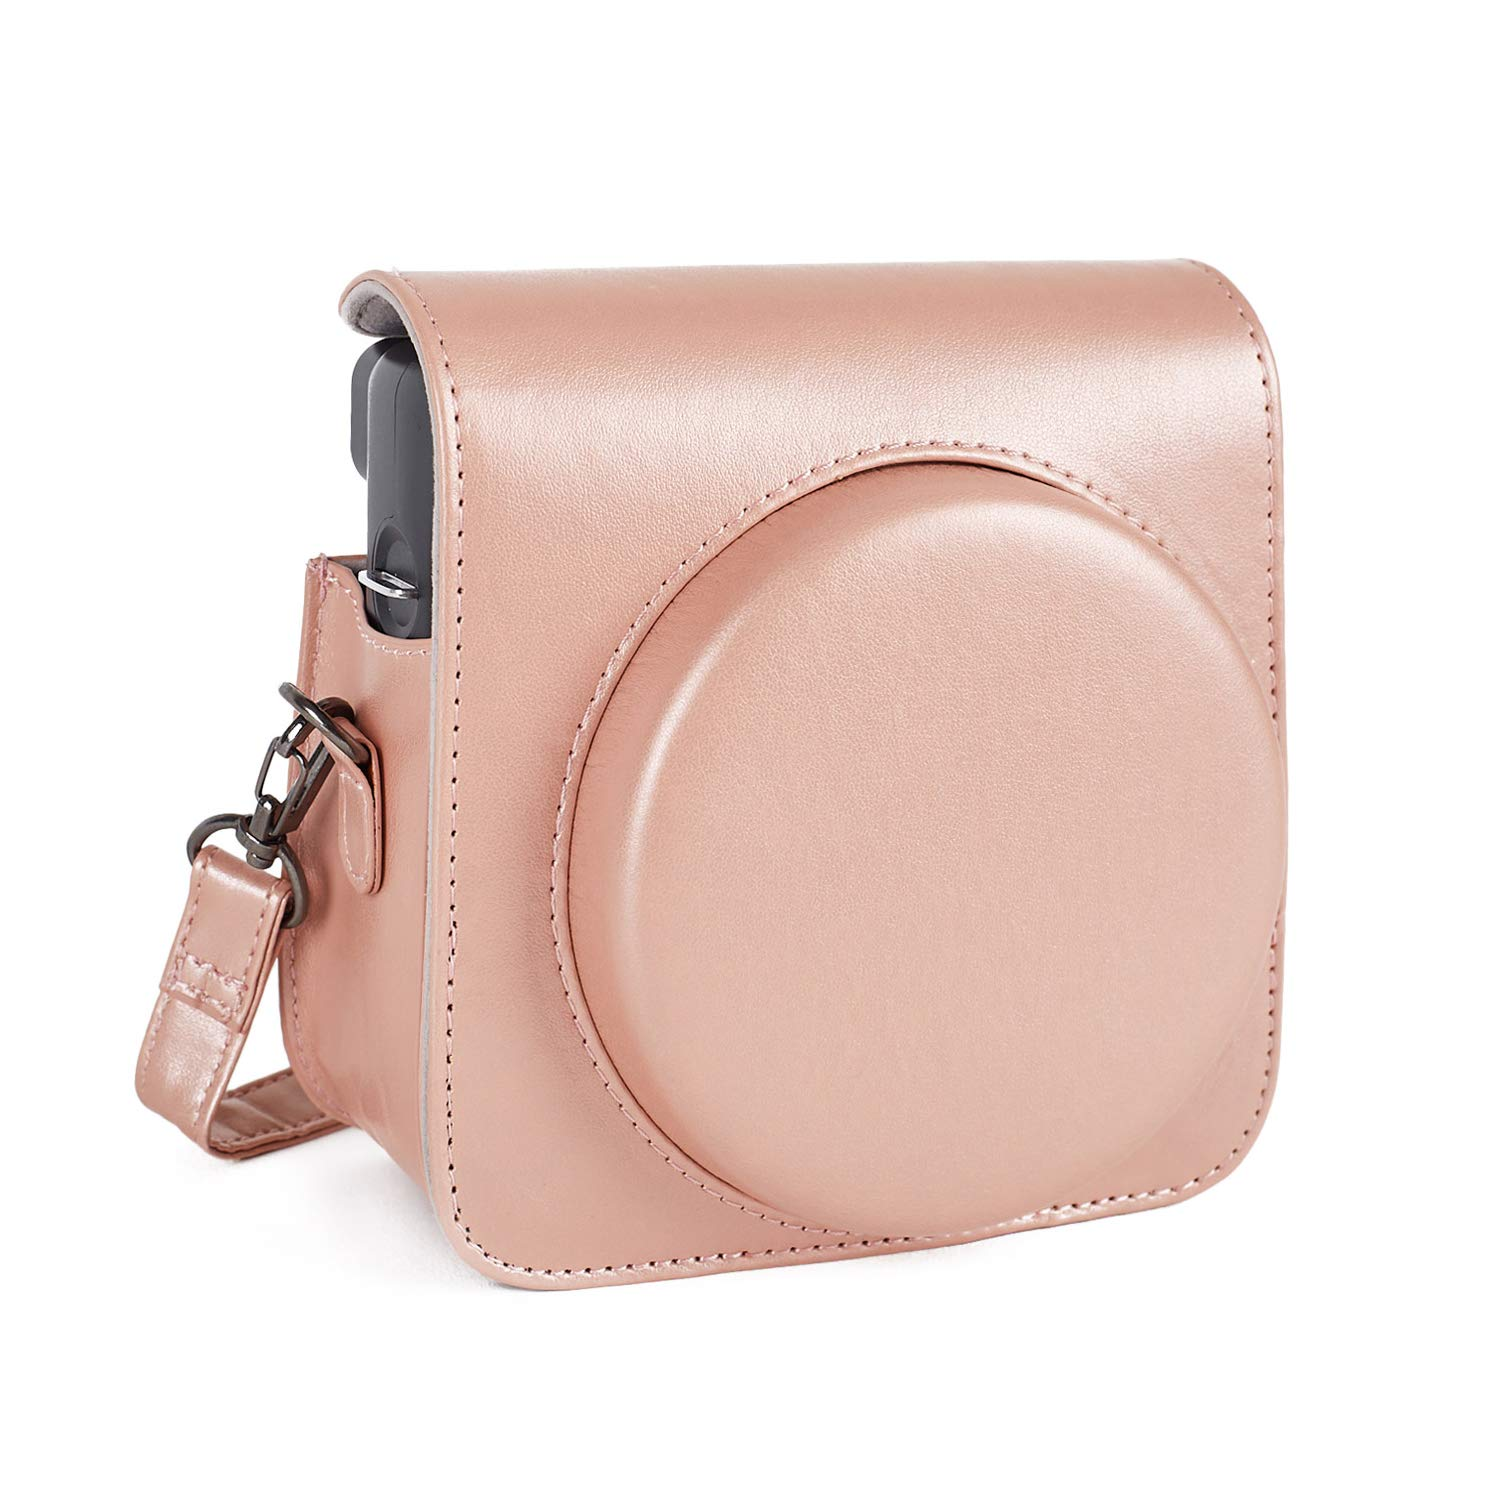 Leebotree Protective Case Compatible with Fujifilm Intsax Square SQ6 Instant Film Camera, Premium PU Leather Bag with Adjustable Shoulder Strap (Blush Gold) LBSQ01